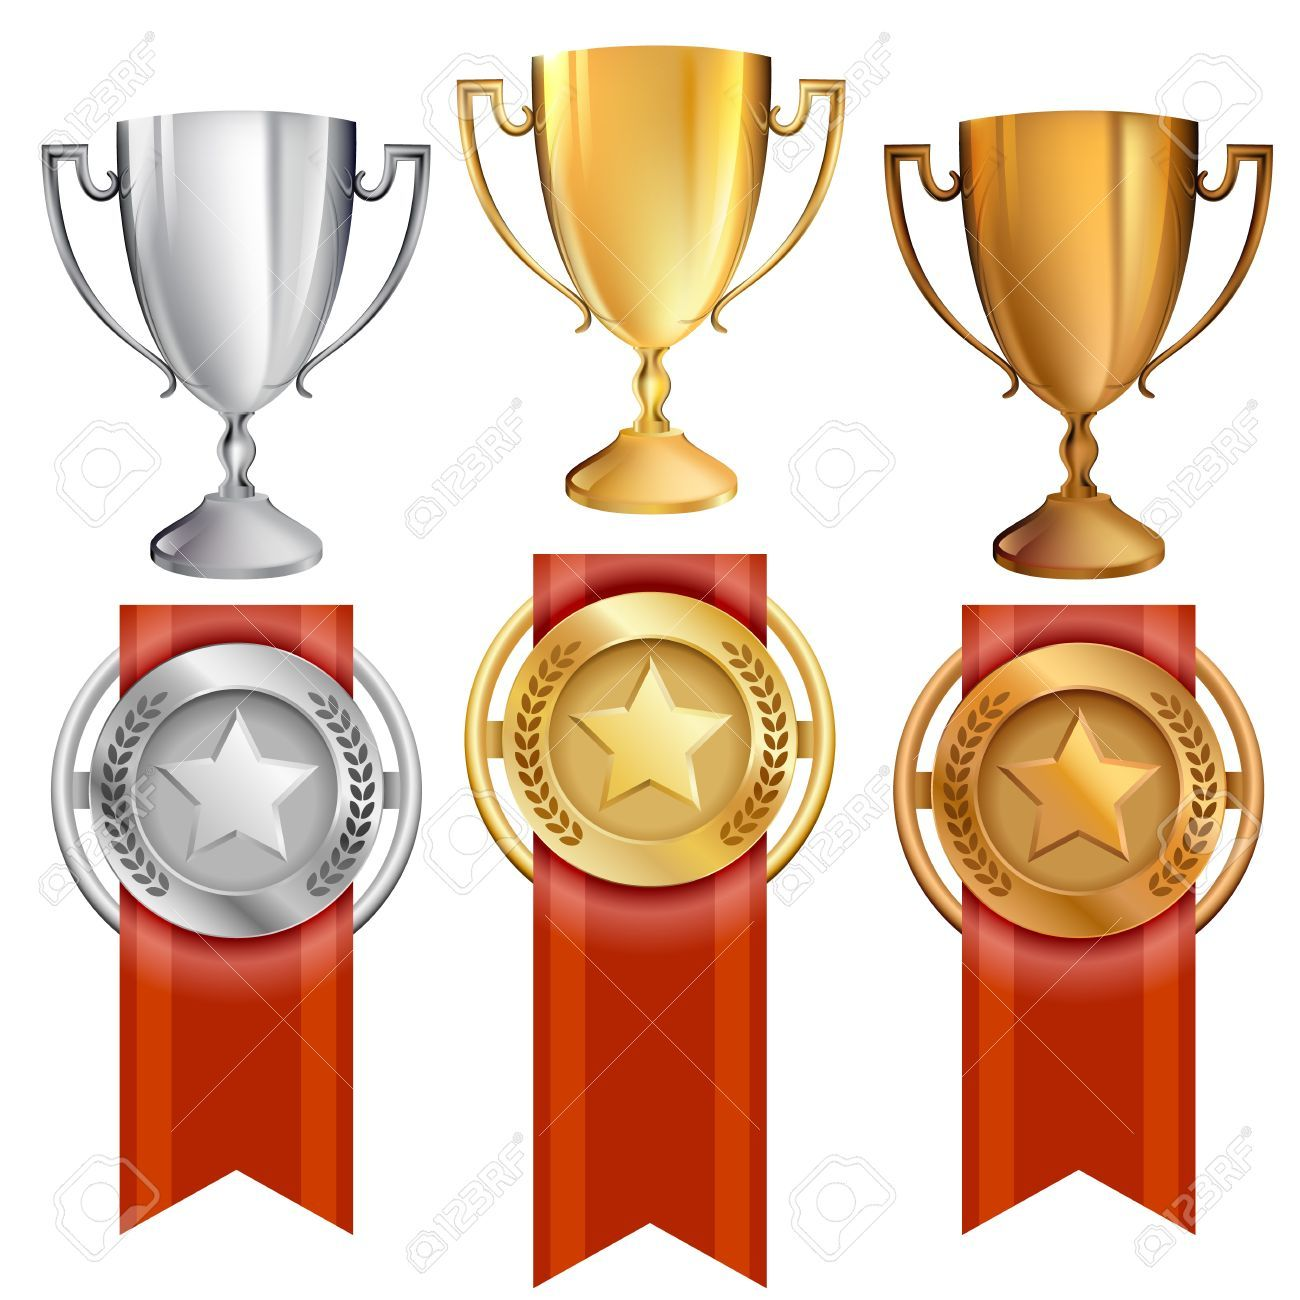 Clipart of trophies and awards 1 » Clipart Portal.